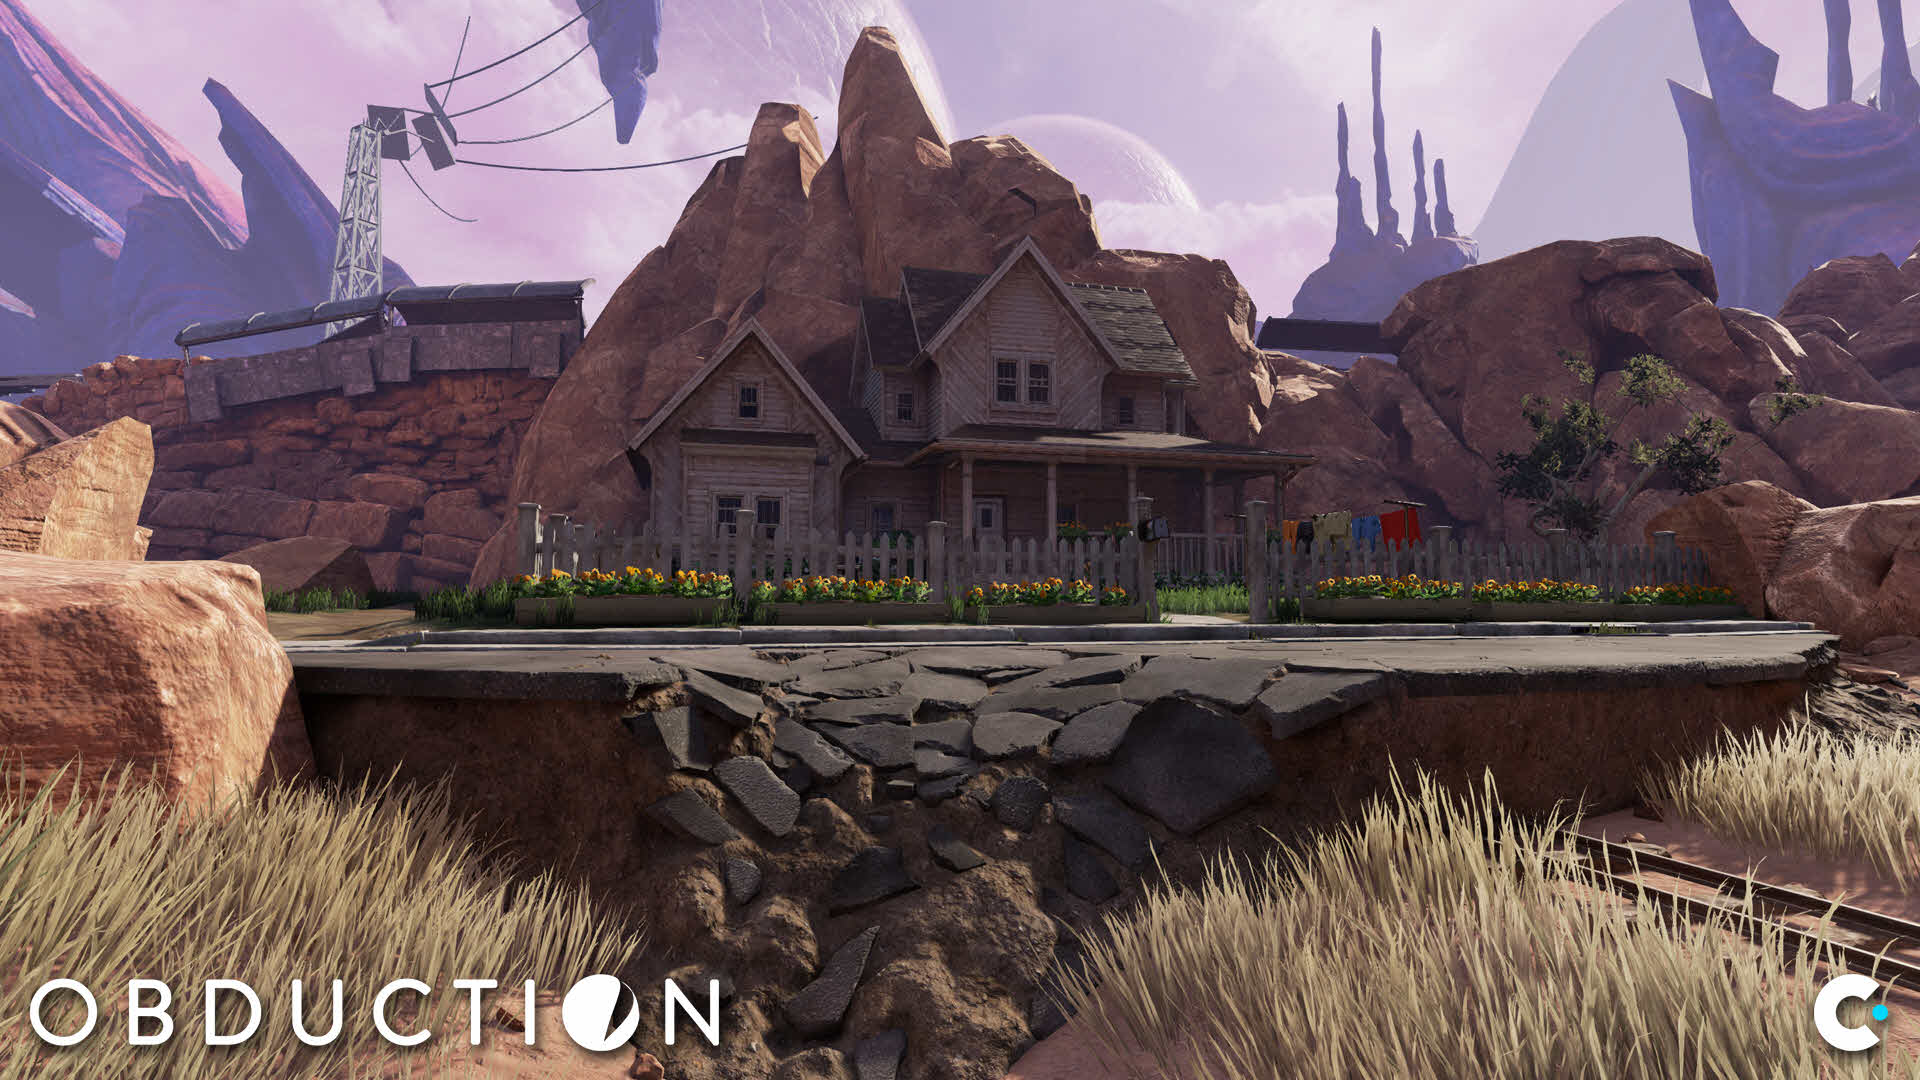 Copy of obduction_01